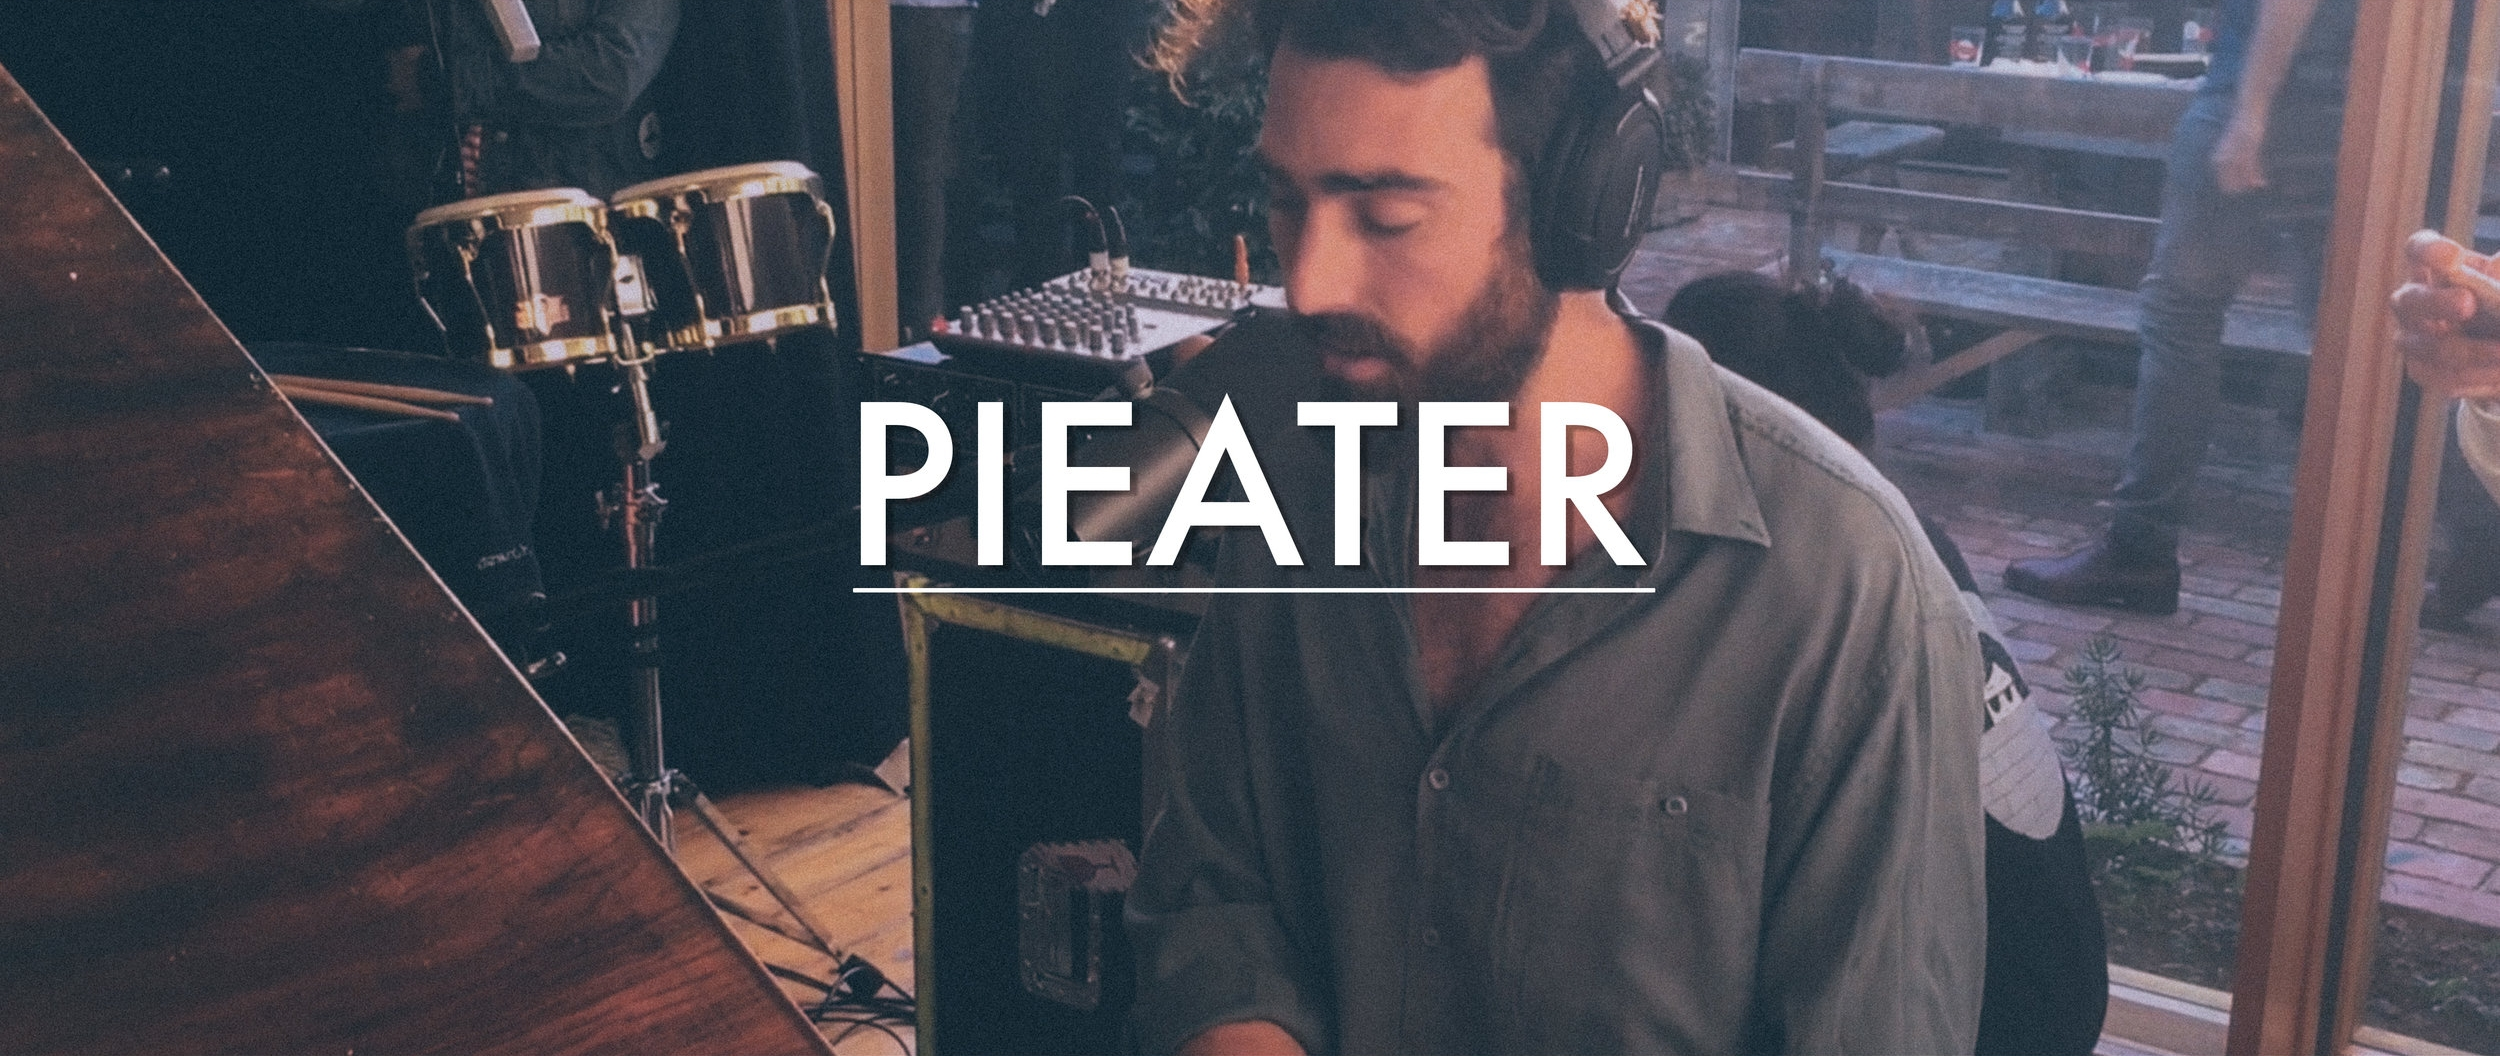 pieater-intro.jpg